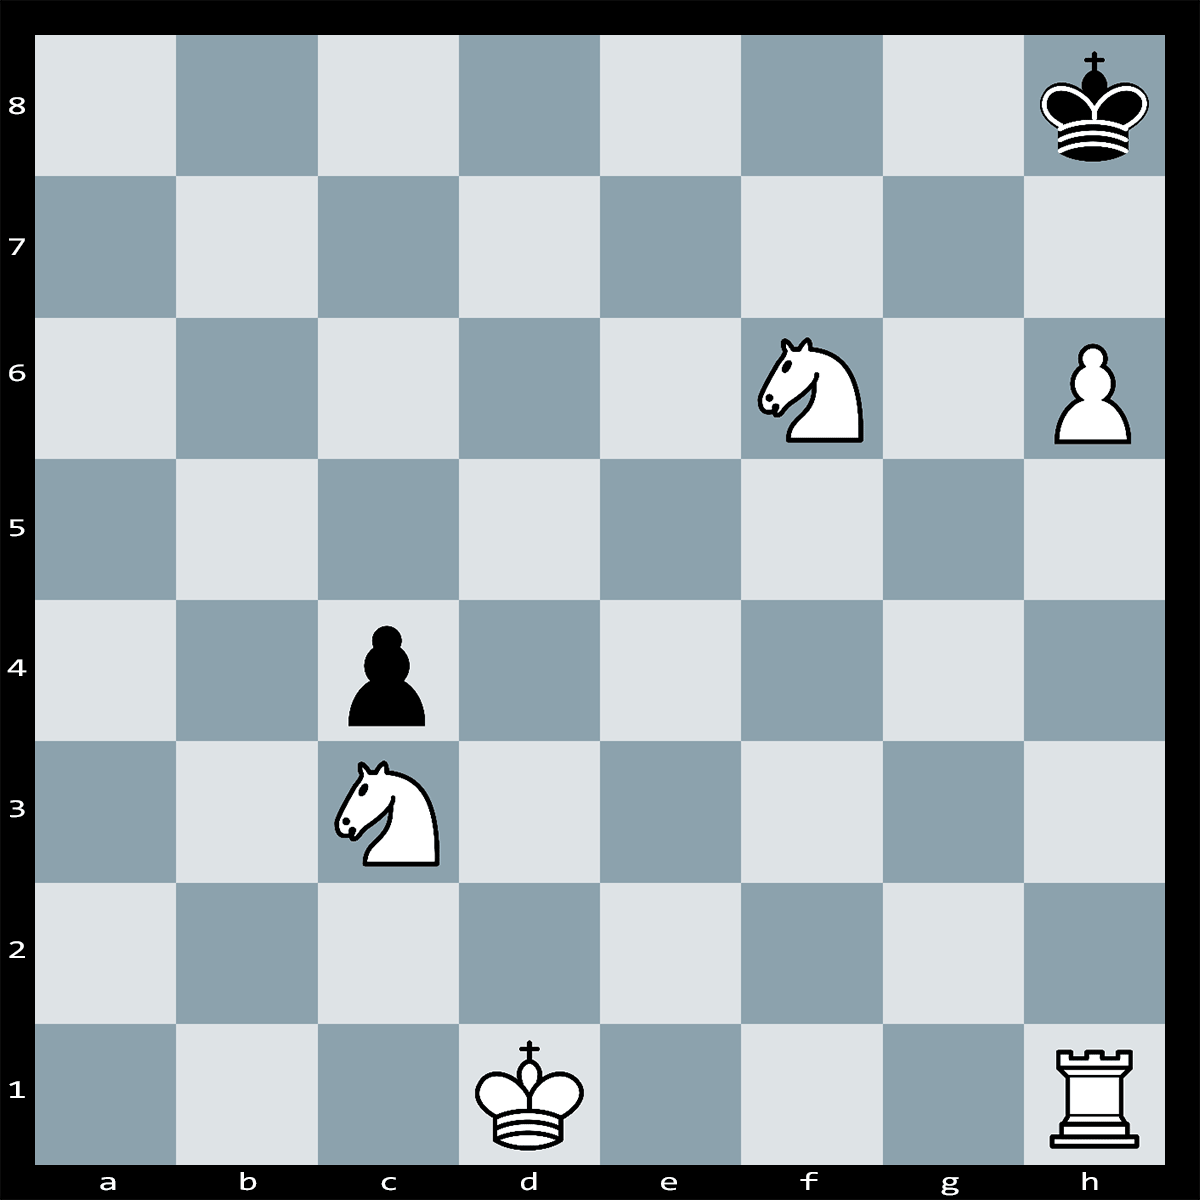 Chess Puzzle #308 | There are several winning moves, but what is the quickest? White to Play and Win.